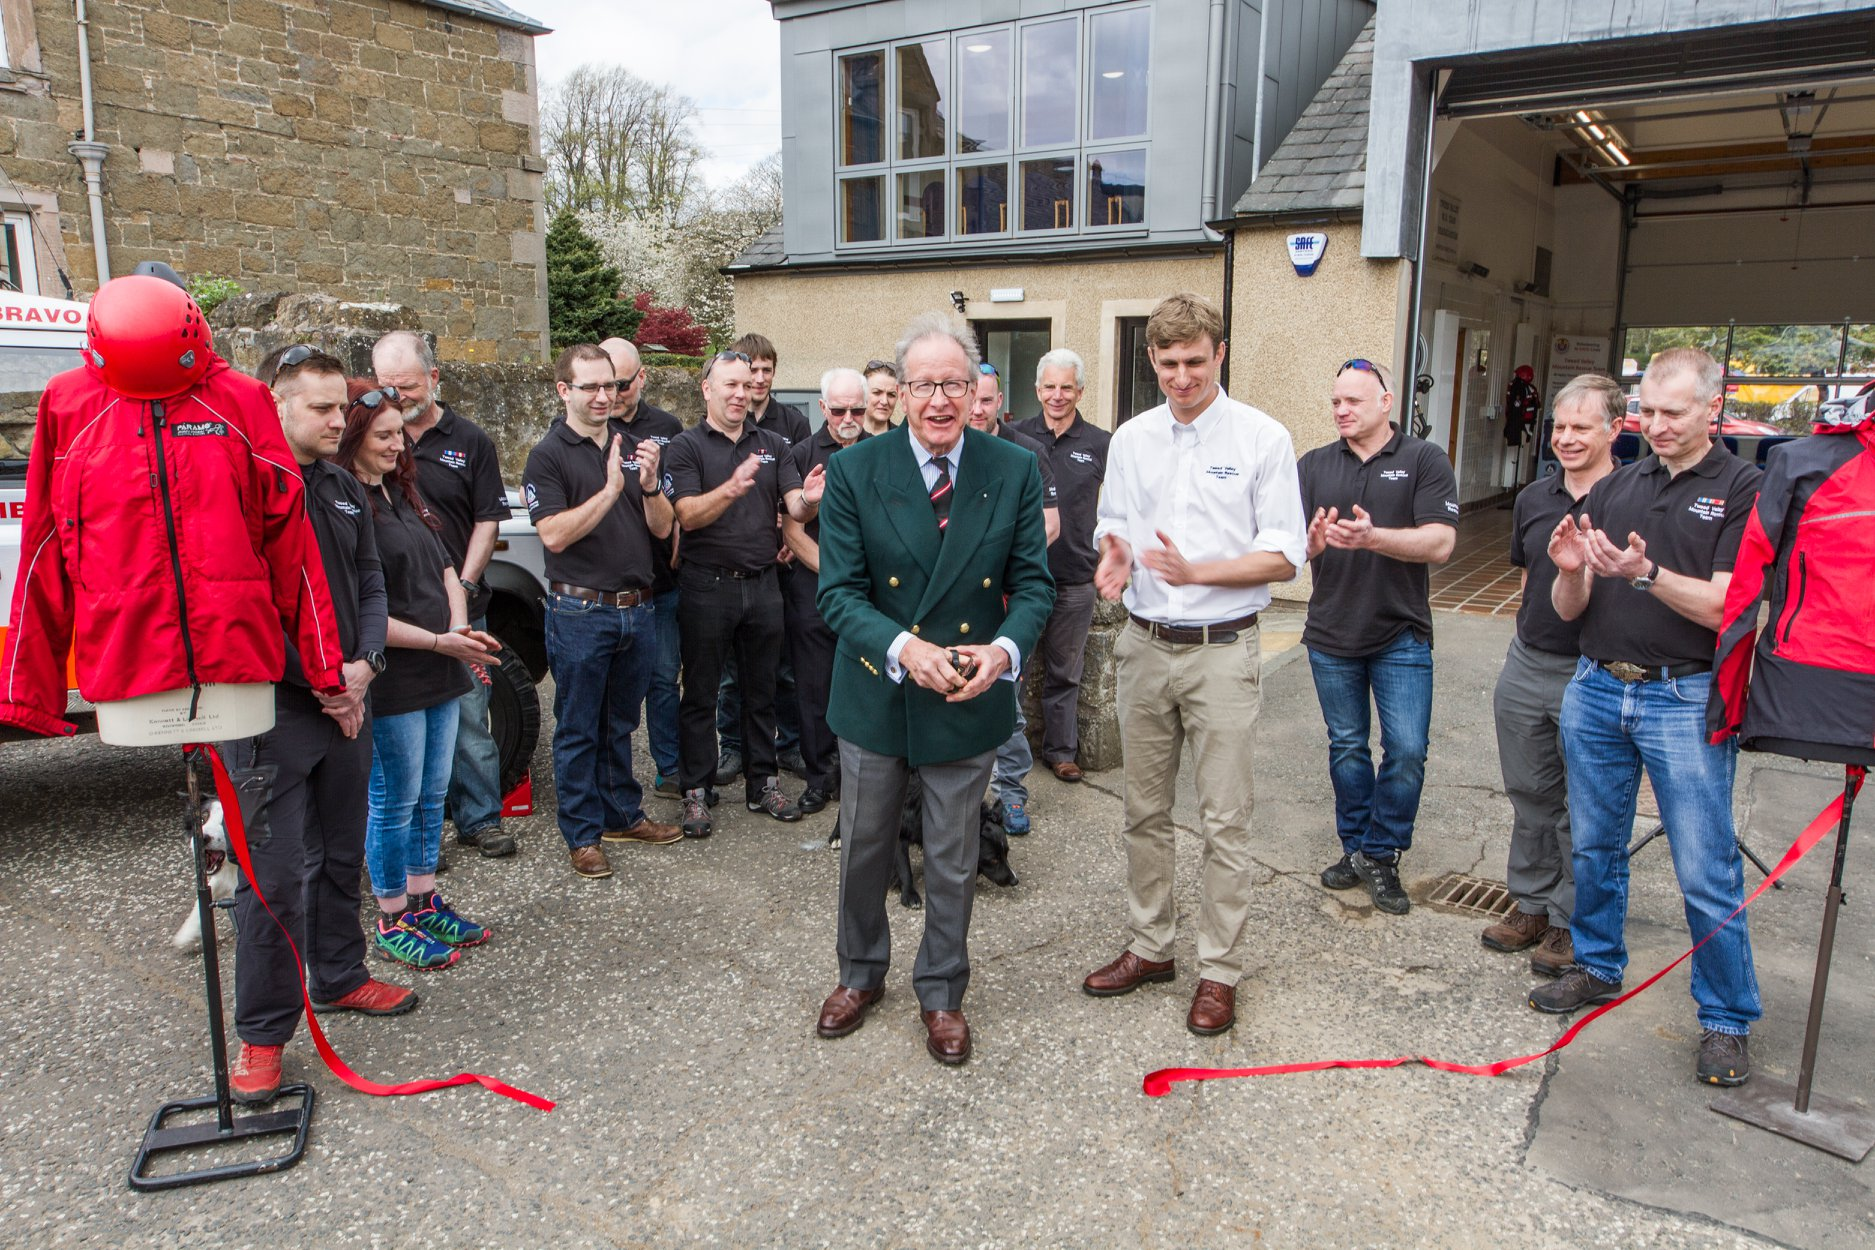 Major General Mark J Strudwick CBE cuts the ribbon. Photo: Jason Baxter